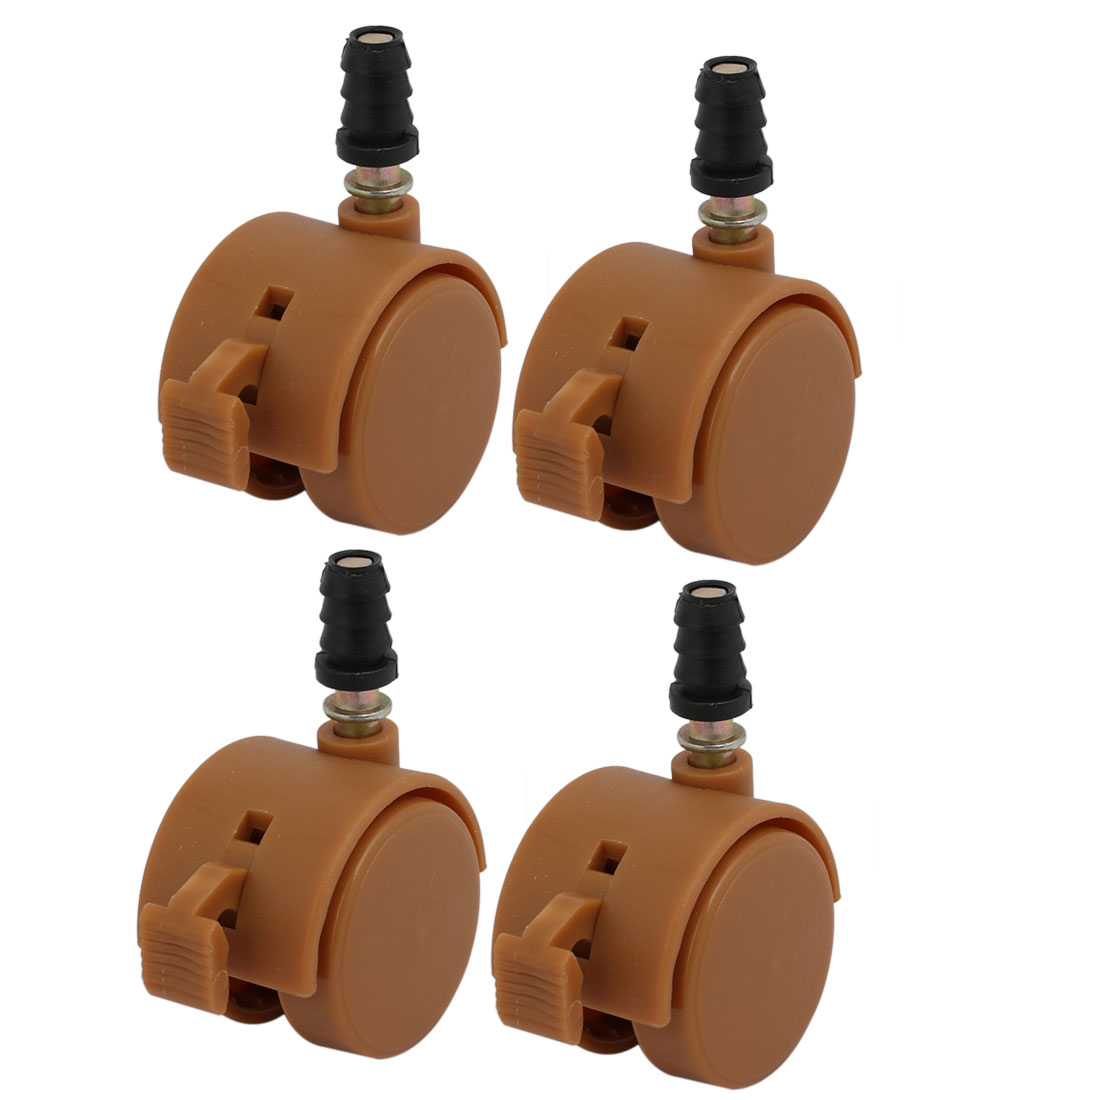 4pcs 1.5-inch Dia 6.5mm Stem Swivel Brake Caster Wheel Brown for Crib